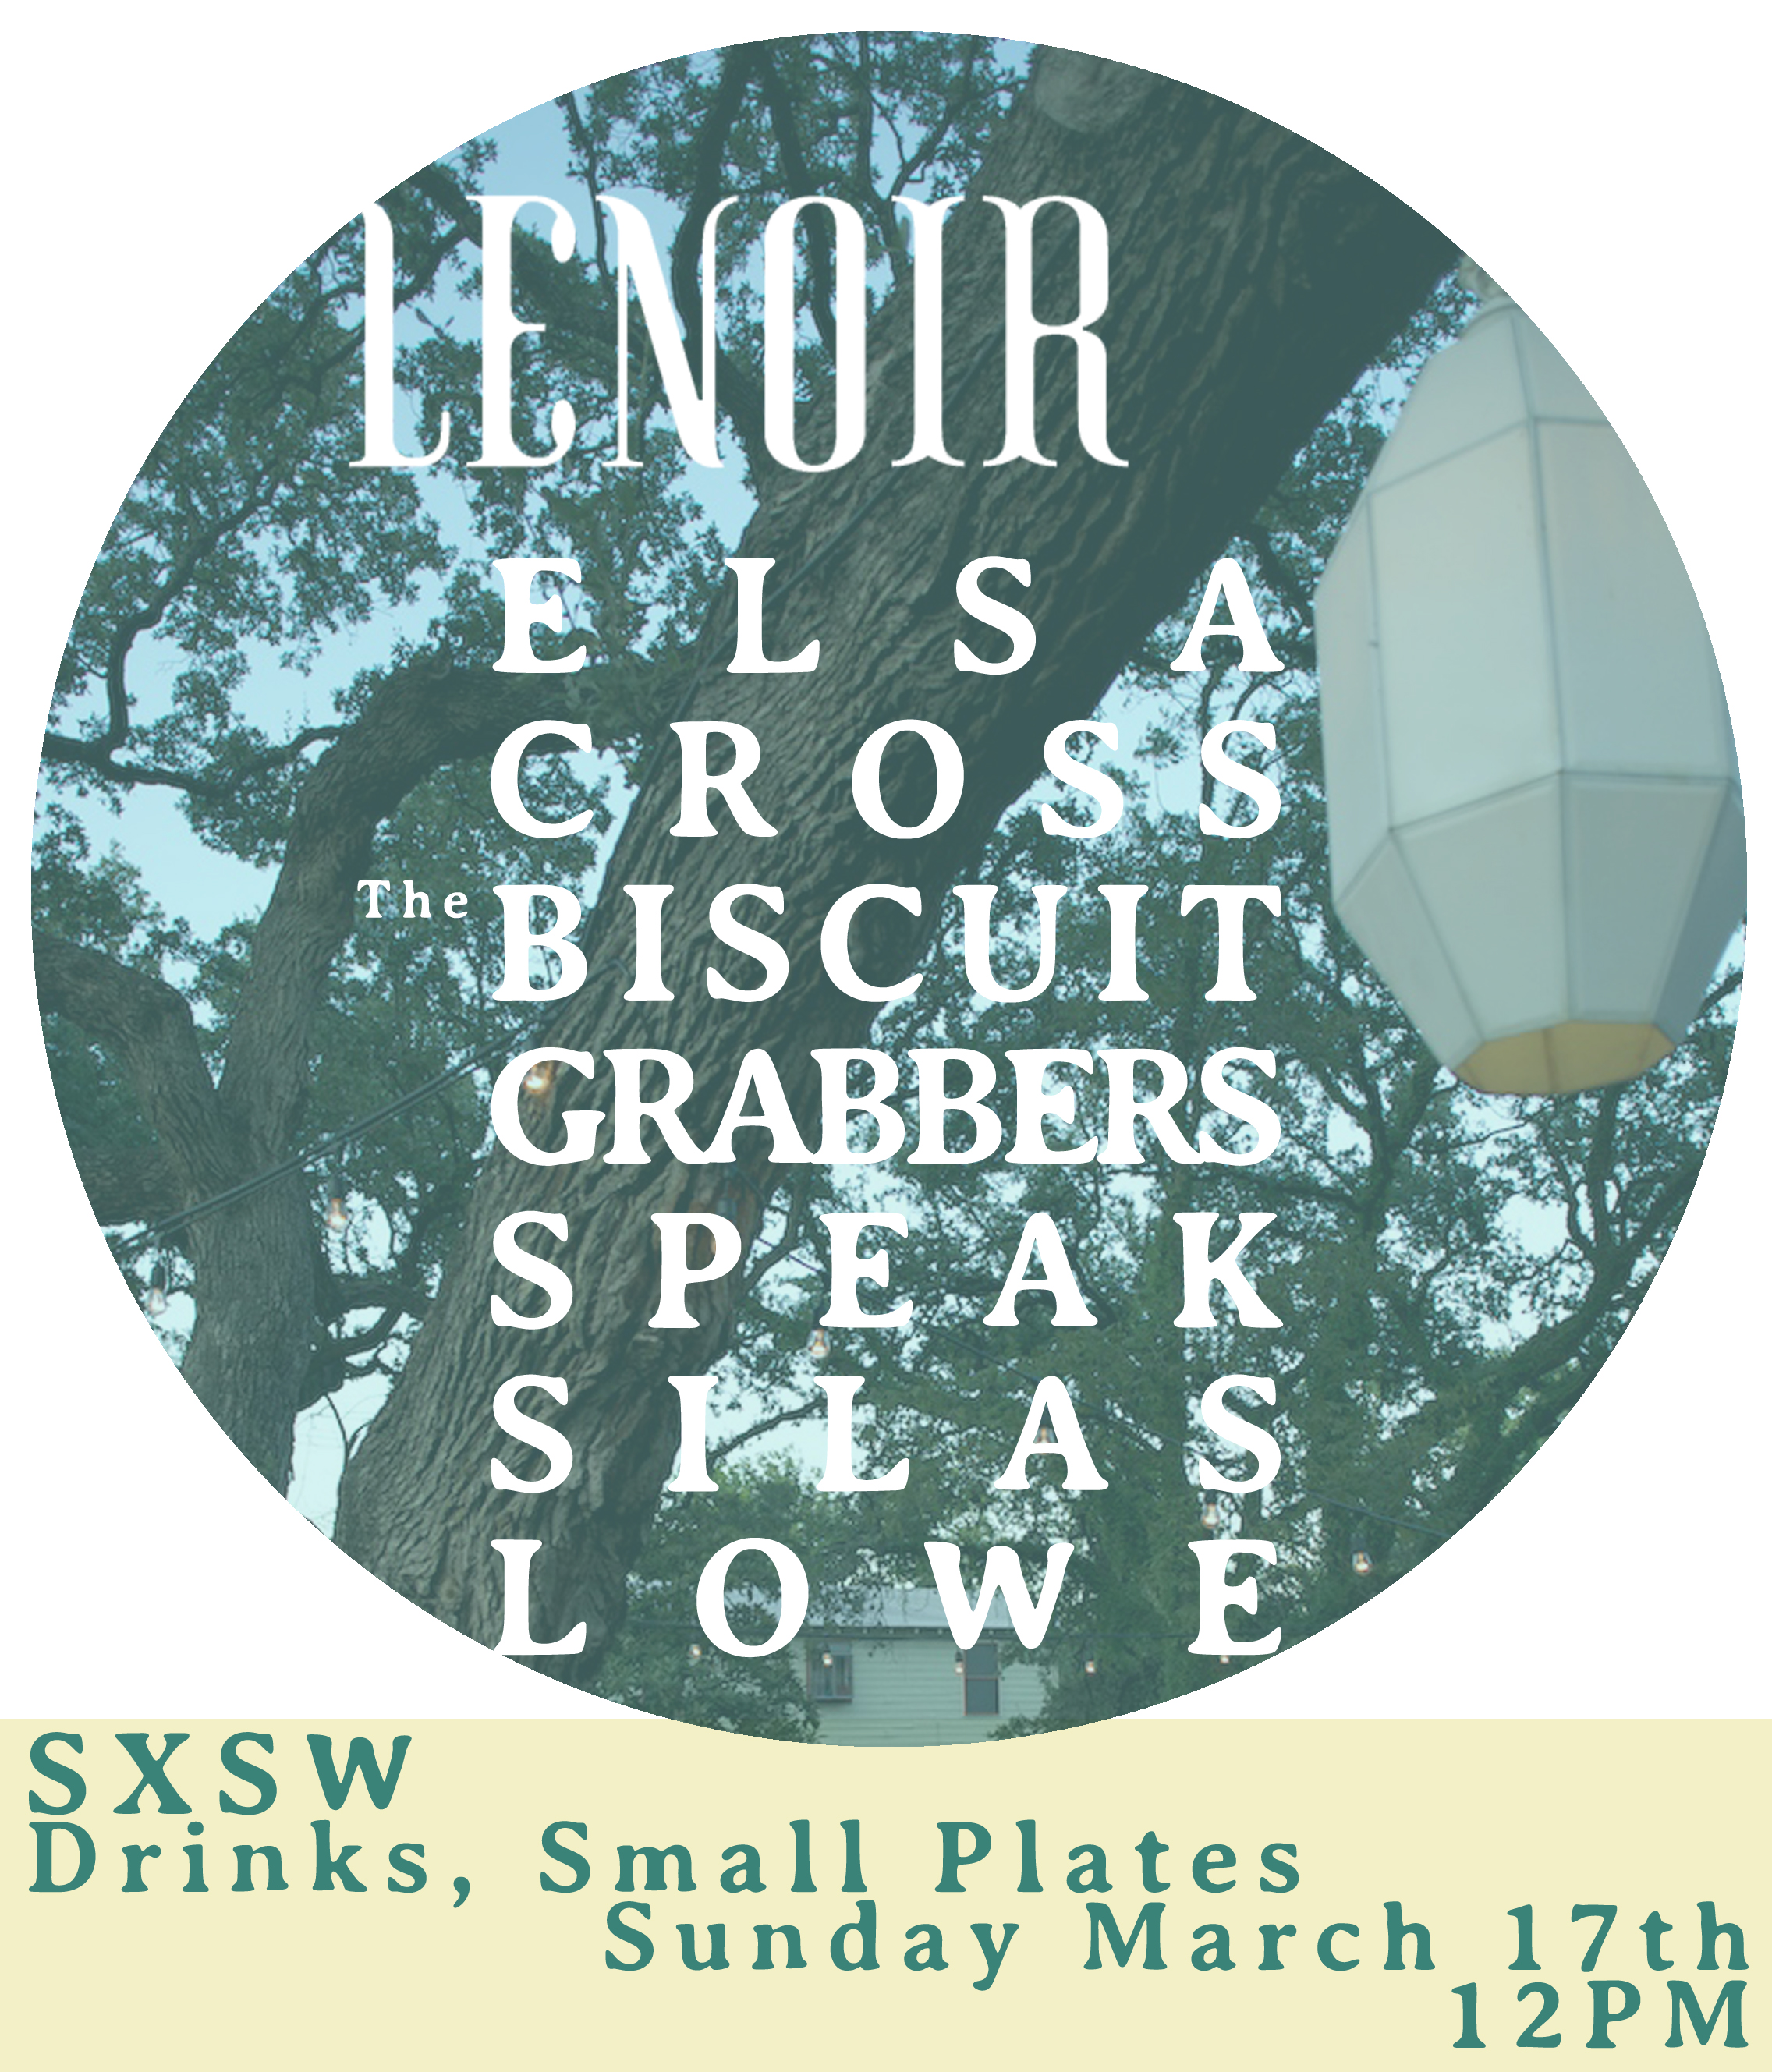 SXSW Music in our Backyard, Edible Communities Local Heroes Award & More!